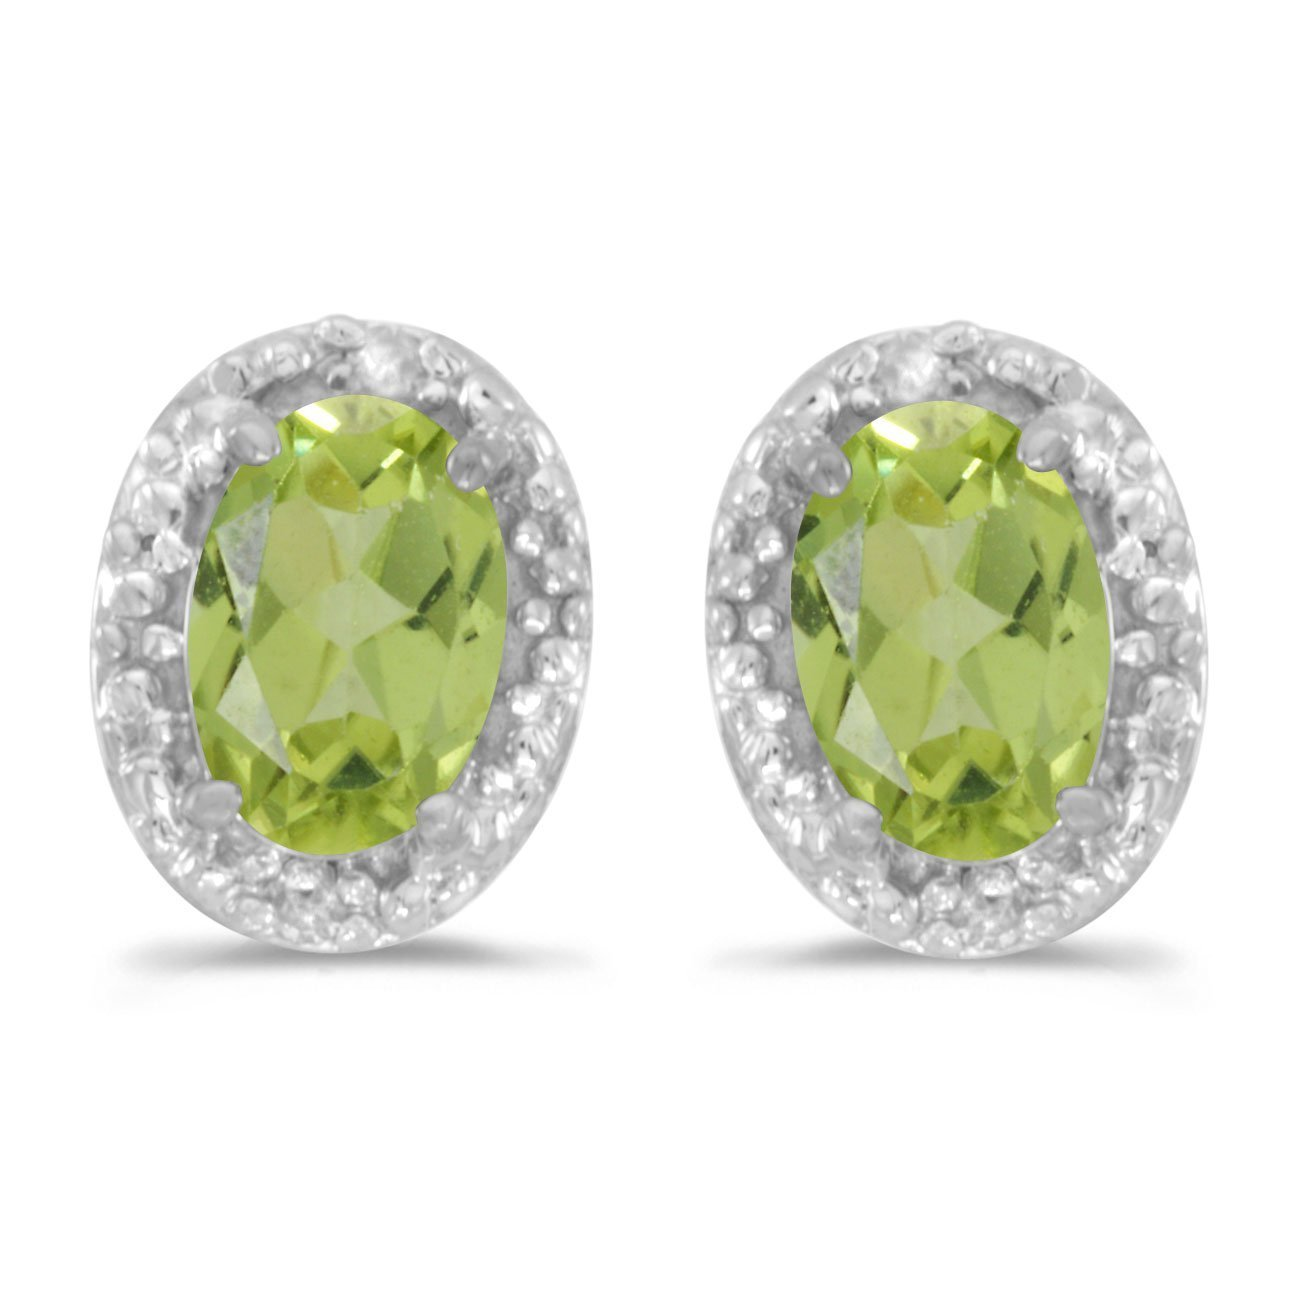 FB Jewels Solid 14k White Gold Studs Genuine Green Birthstone Oval Peridot And Diamond Earrings (4/5 Cttw.)